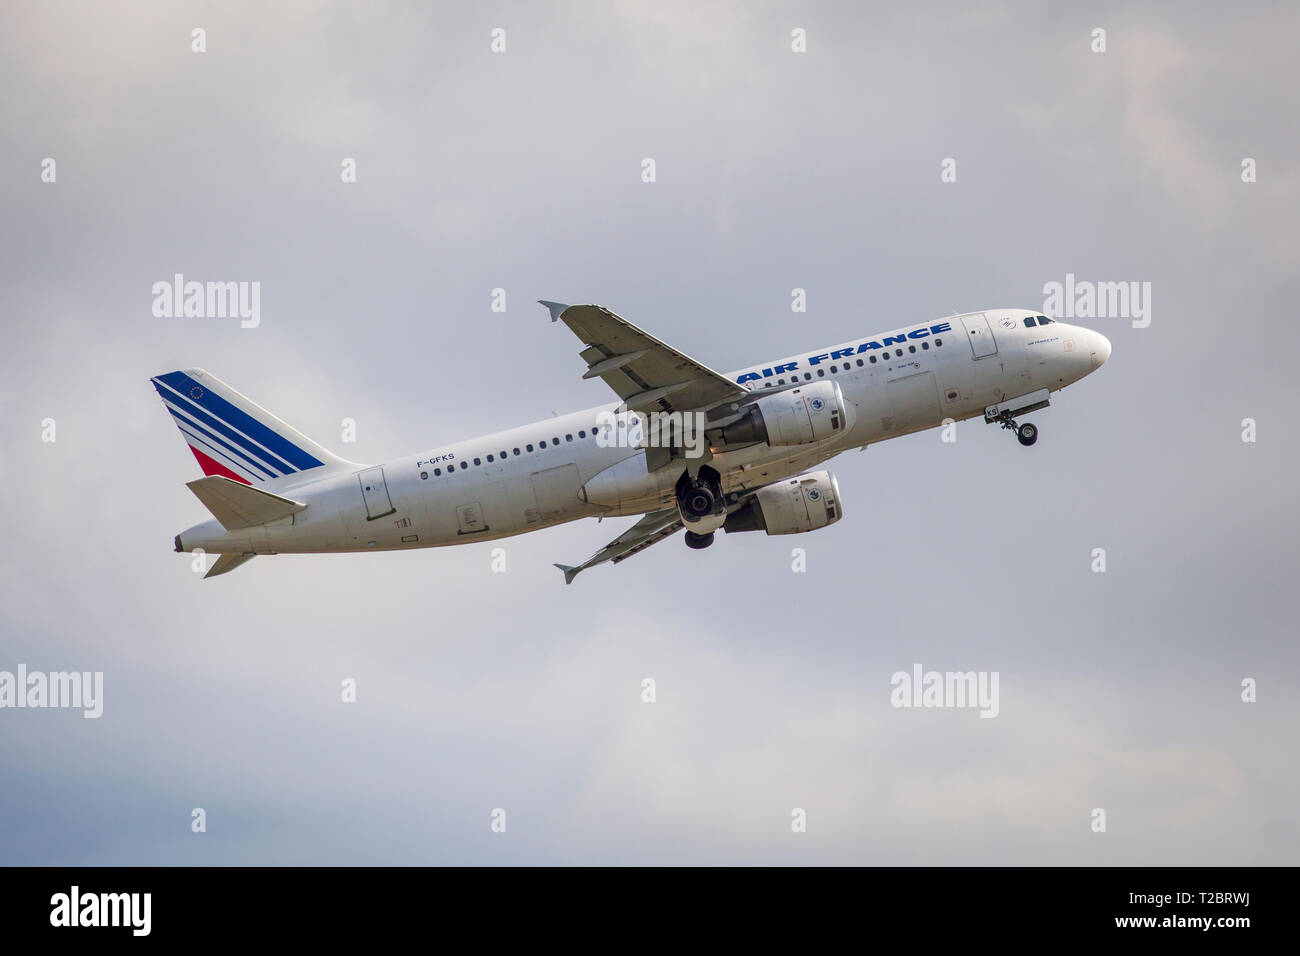 Ai France KLM A320 airbus. - Stock Image